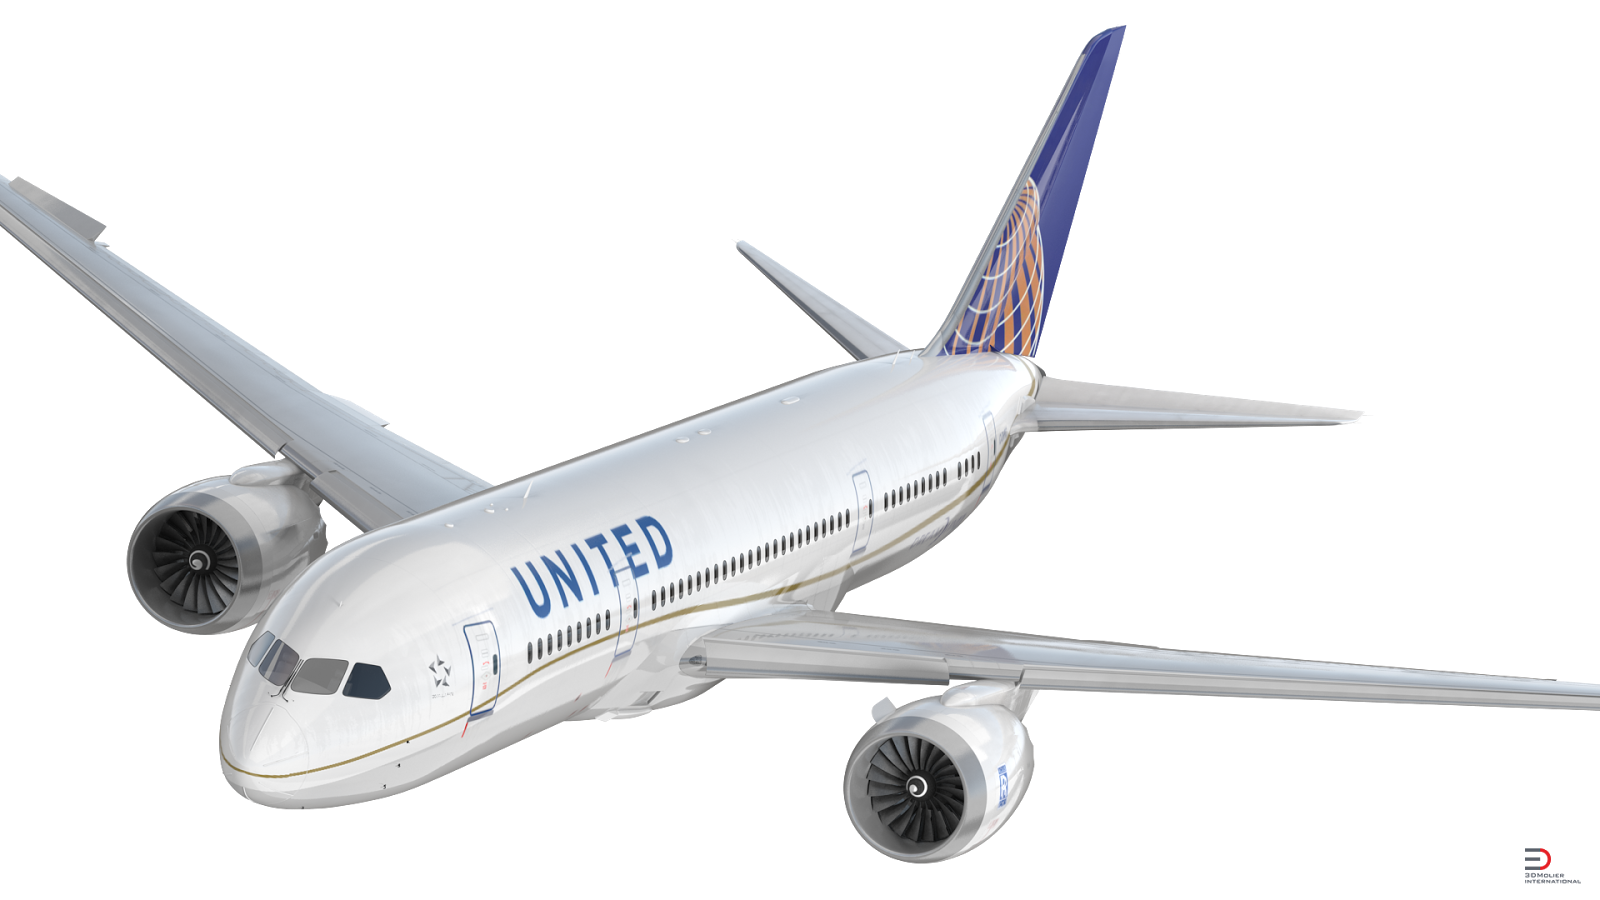 United 787 clipart free stock Airline,Airliner,Airplane,Air travel,Aviation,Aircraft ... free stock